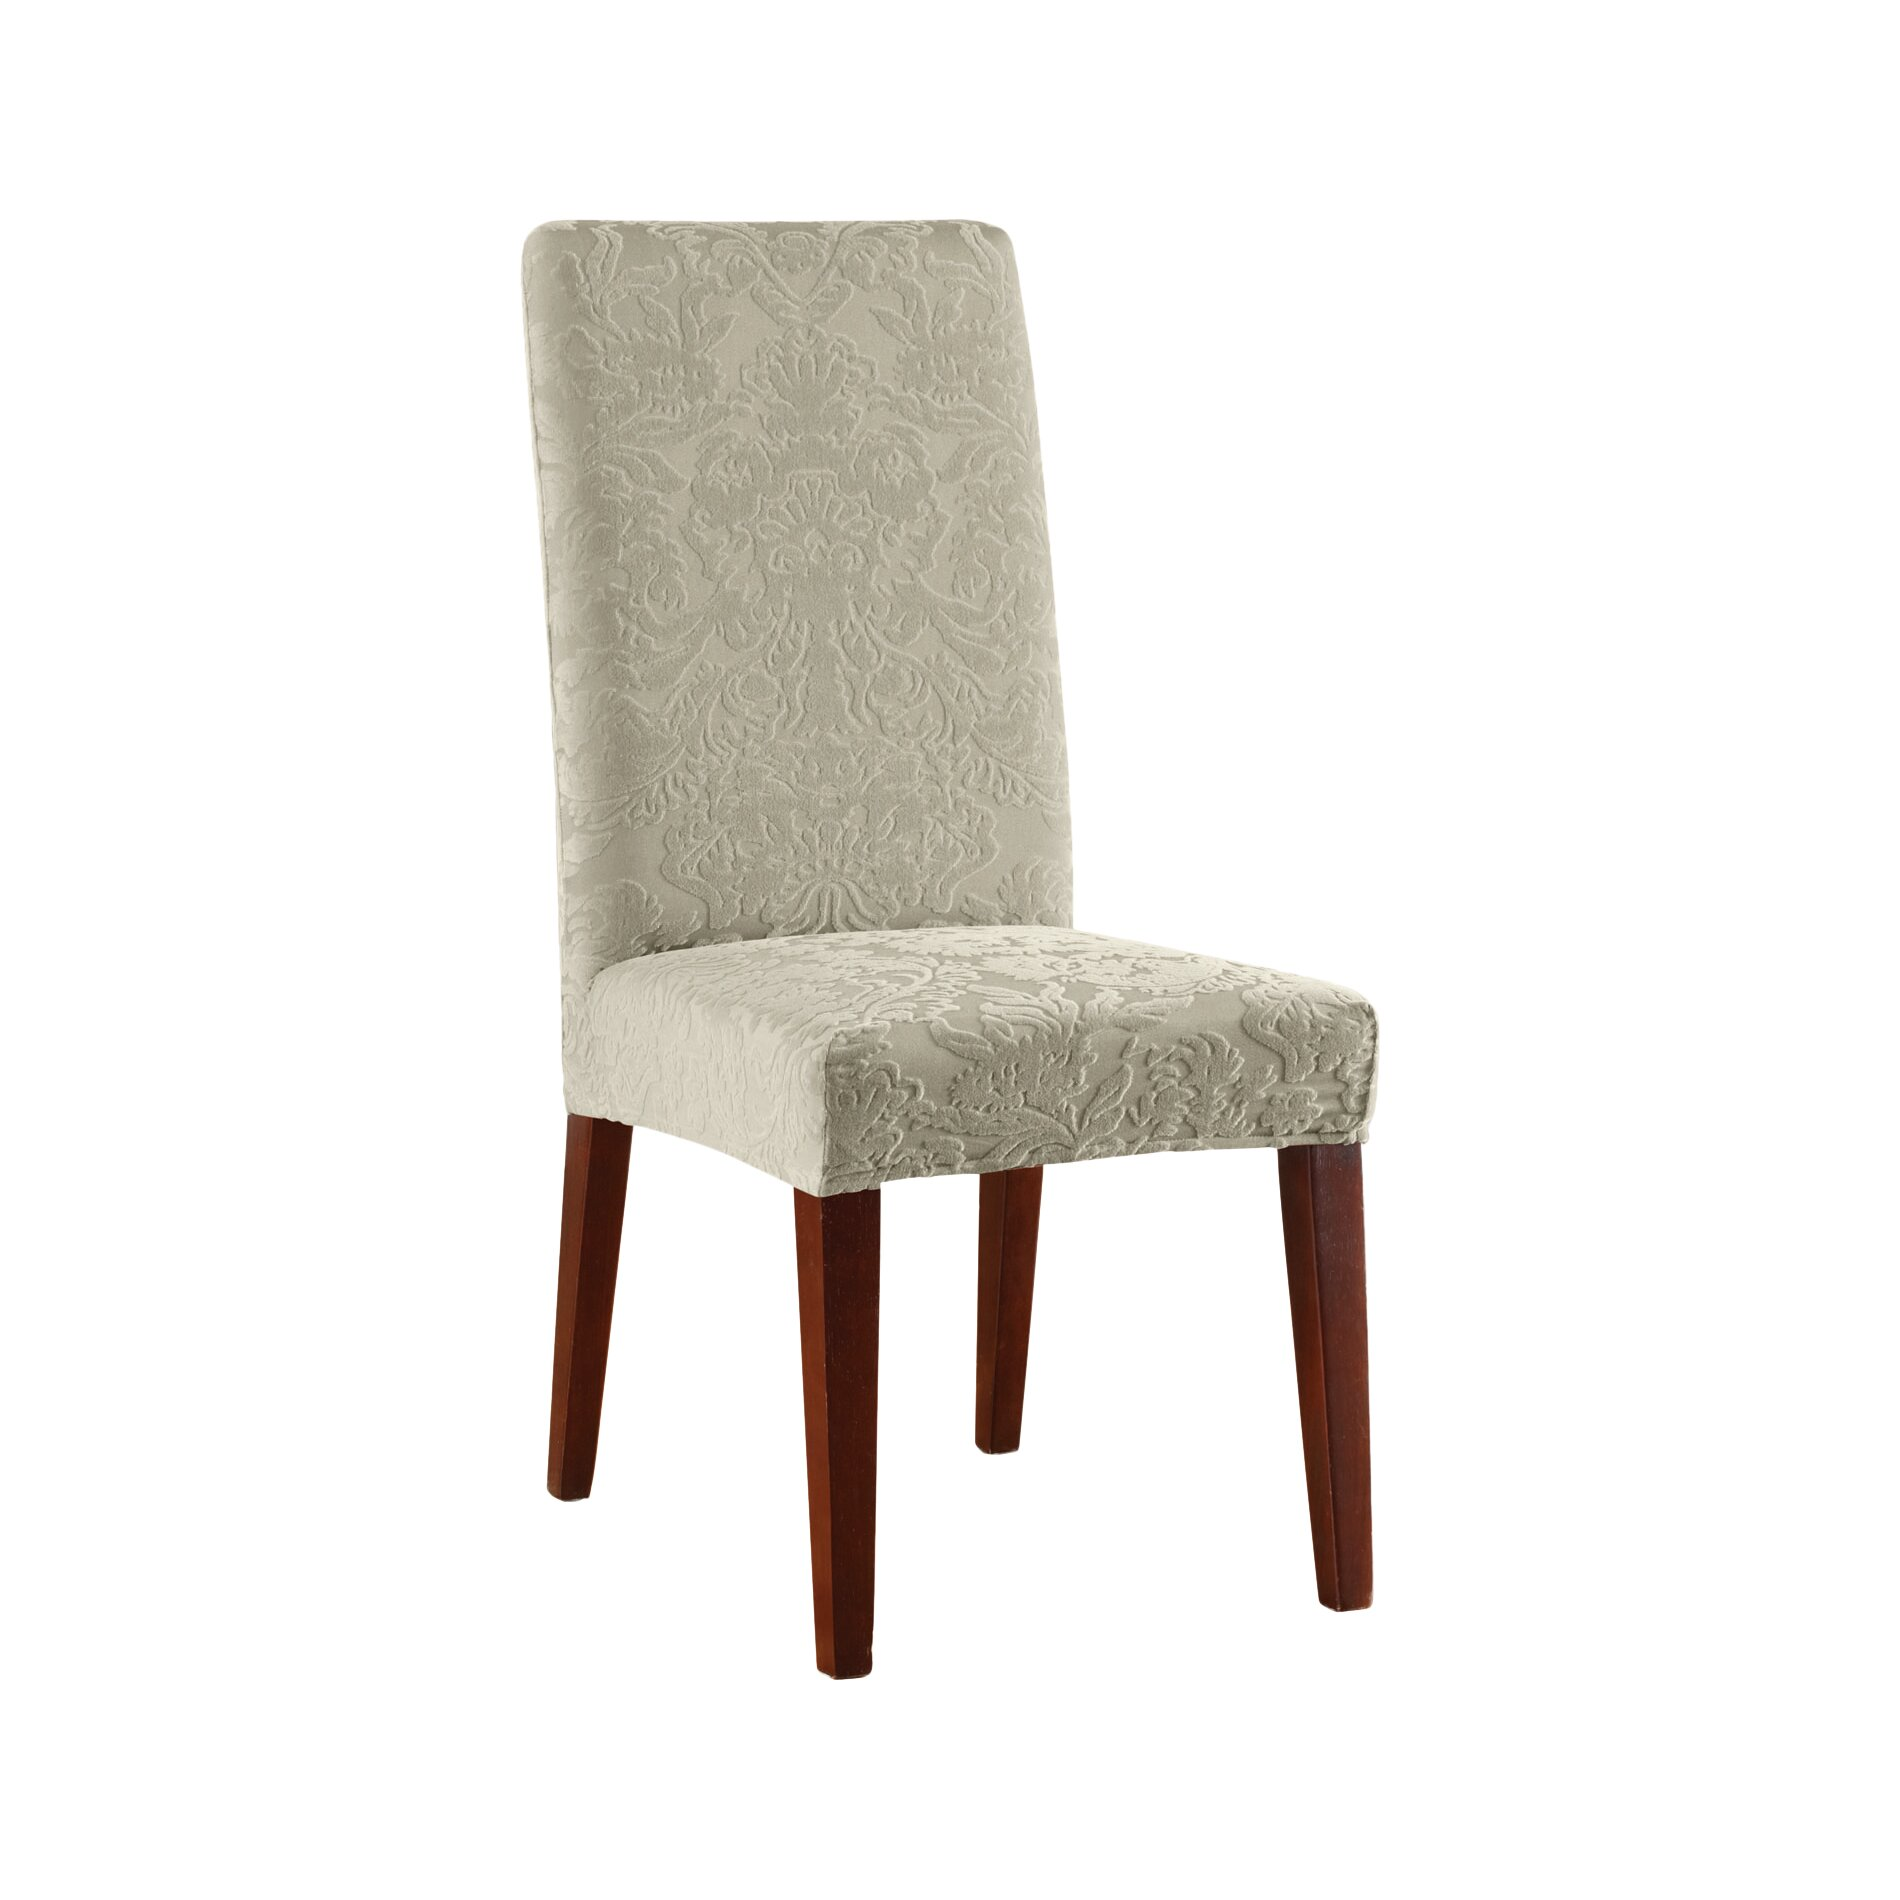 Sure Fit Stretch Jacquard Damask Dining Chair Slipcover  : Stretch2BJacquard2BDamask2BShort2BChair2BSlipcover from www.wayfair.ca size 1900 x 1900 jpeg 230kB